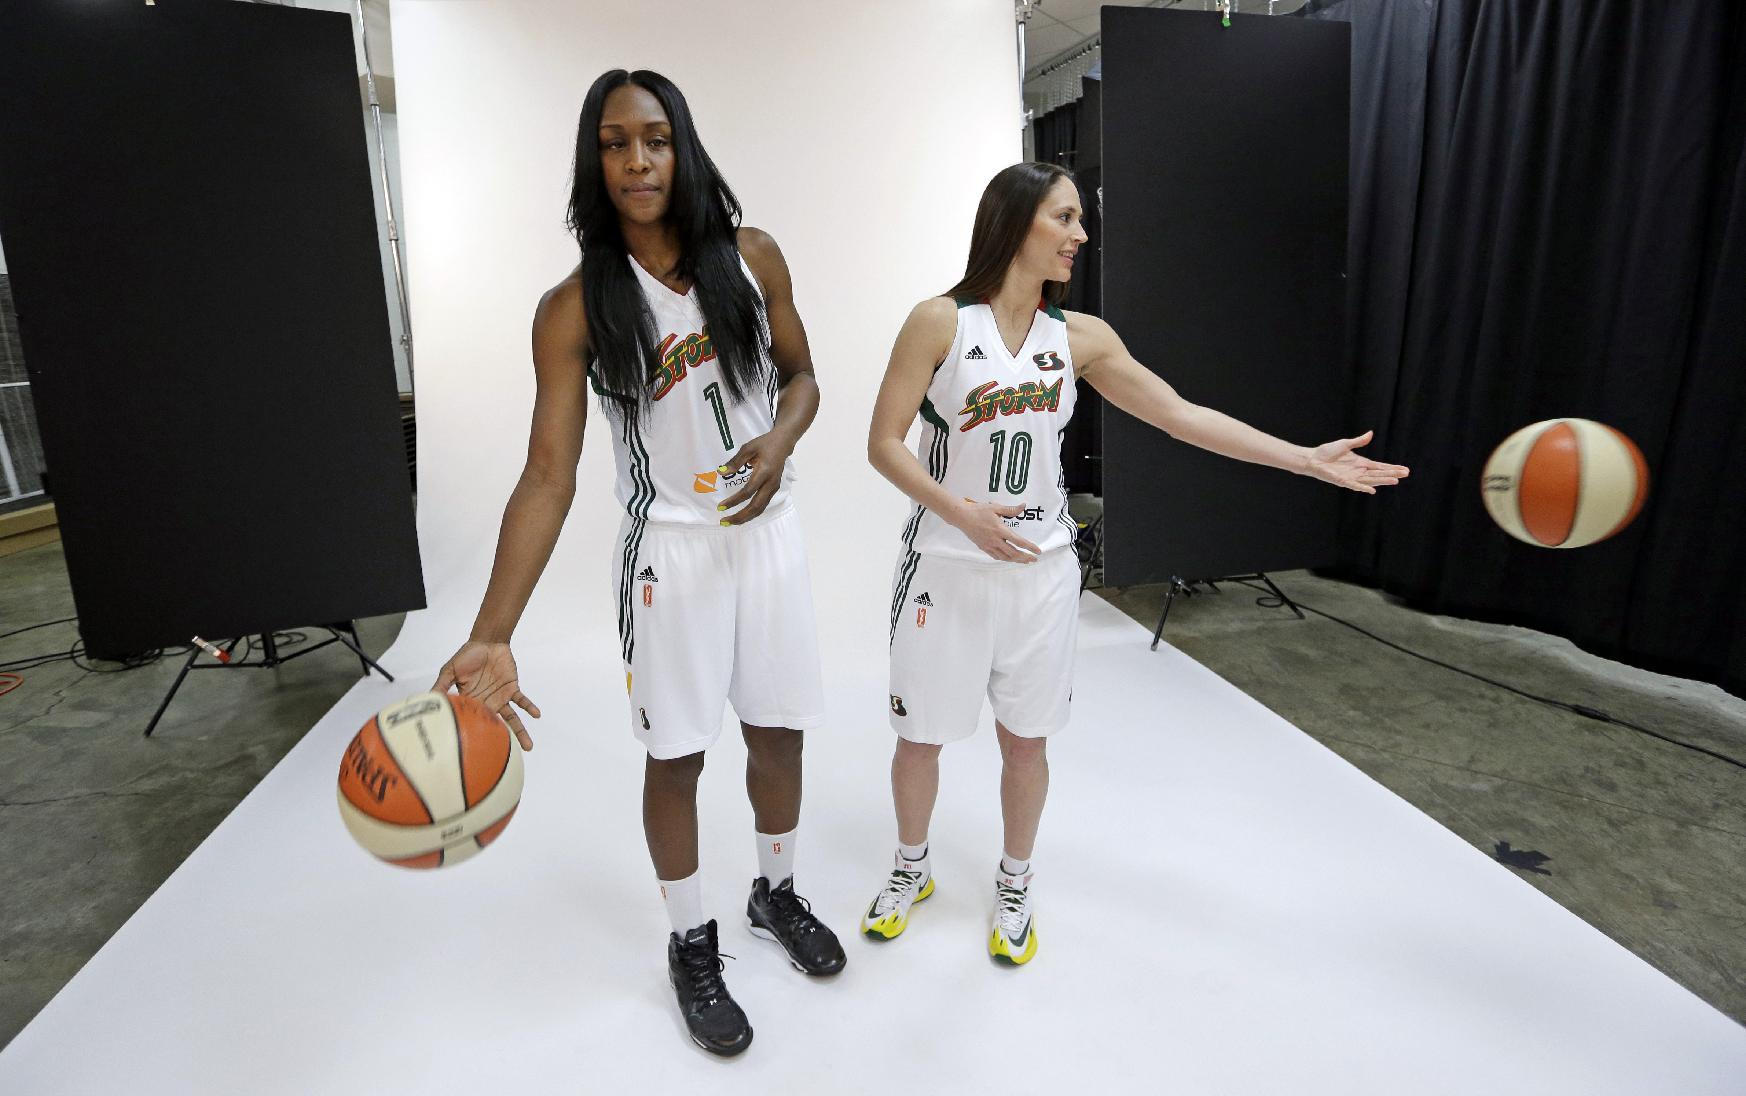 Seattle Storm's Crystal Langhorne, left, and Sue Bird toss aside basketballs during a photo session at the team's annual media day Wednesday, May 7, 2014, in Seattle. The team opens against the Los Angeles Sparks on May 16 in Seattle